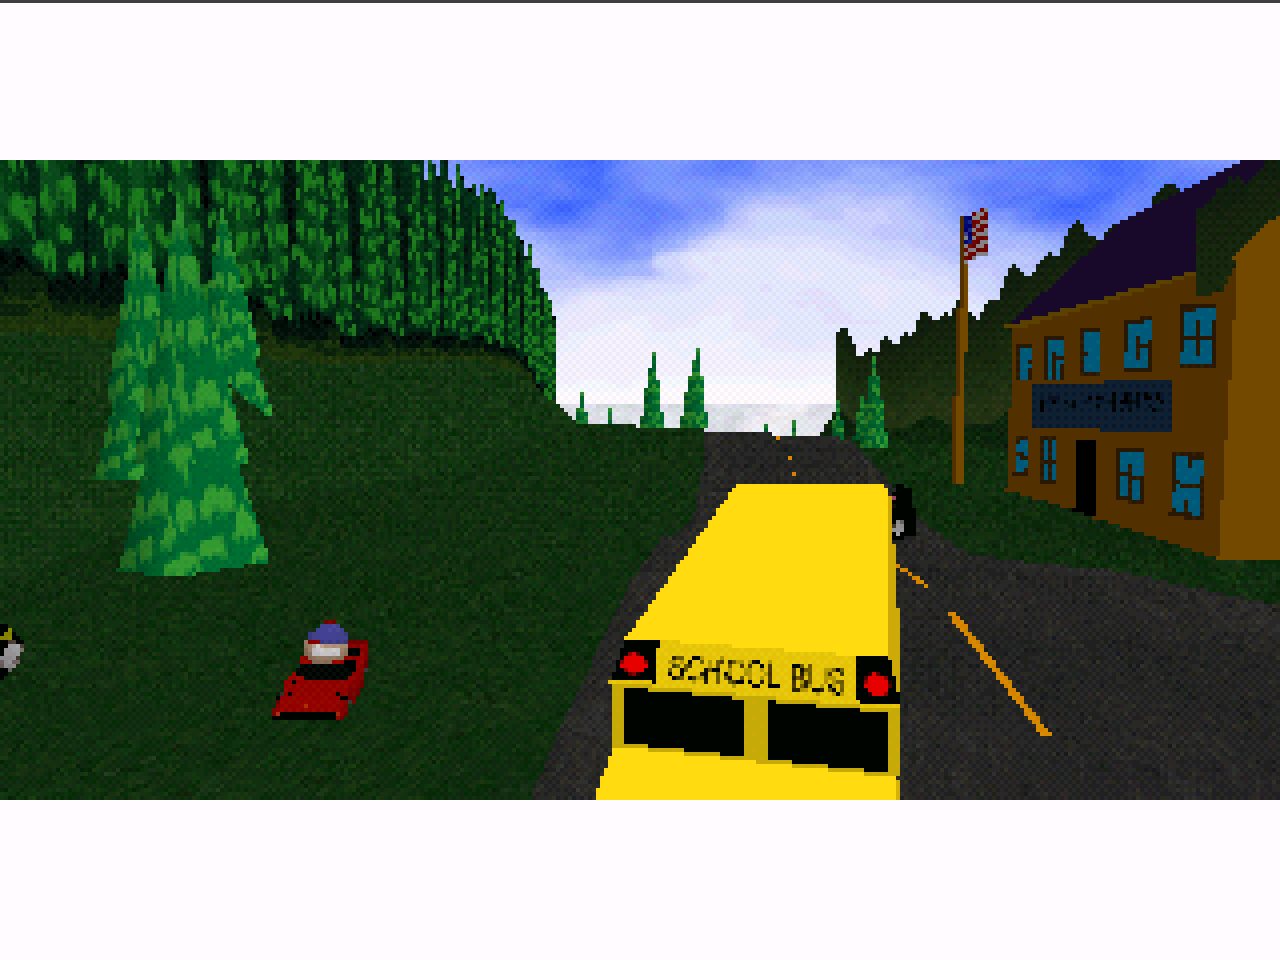 https://s3.eu-west-3.amazonaws.com/games.anthony-dessalles.com/South Park Rally PS1 2020 - Screenshots/South Park Rally-201125-180614.png